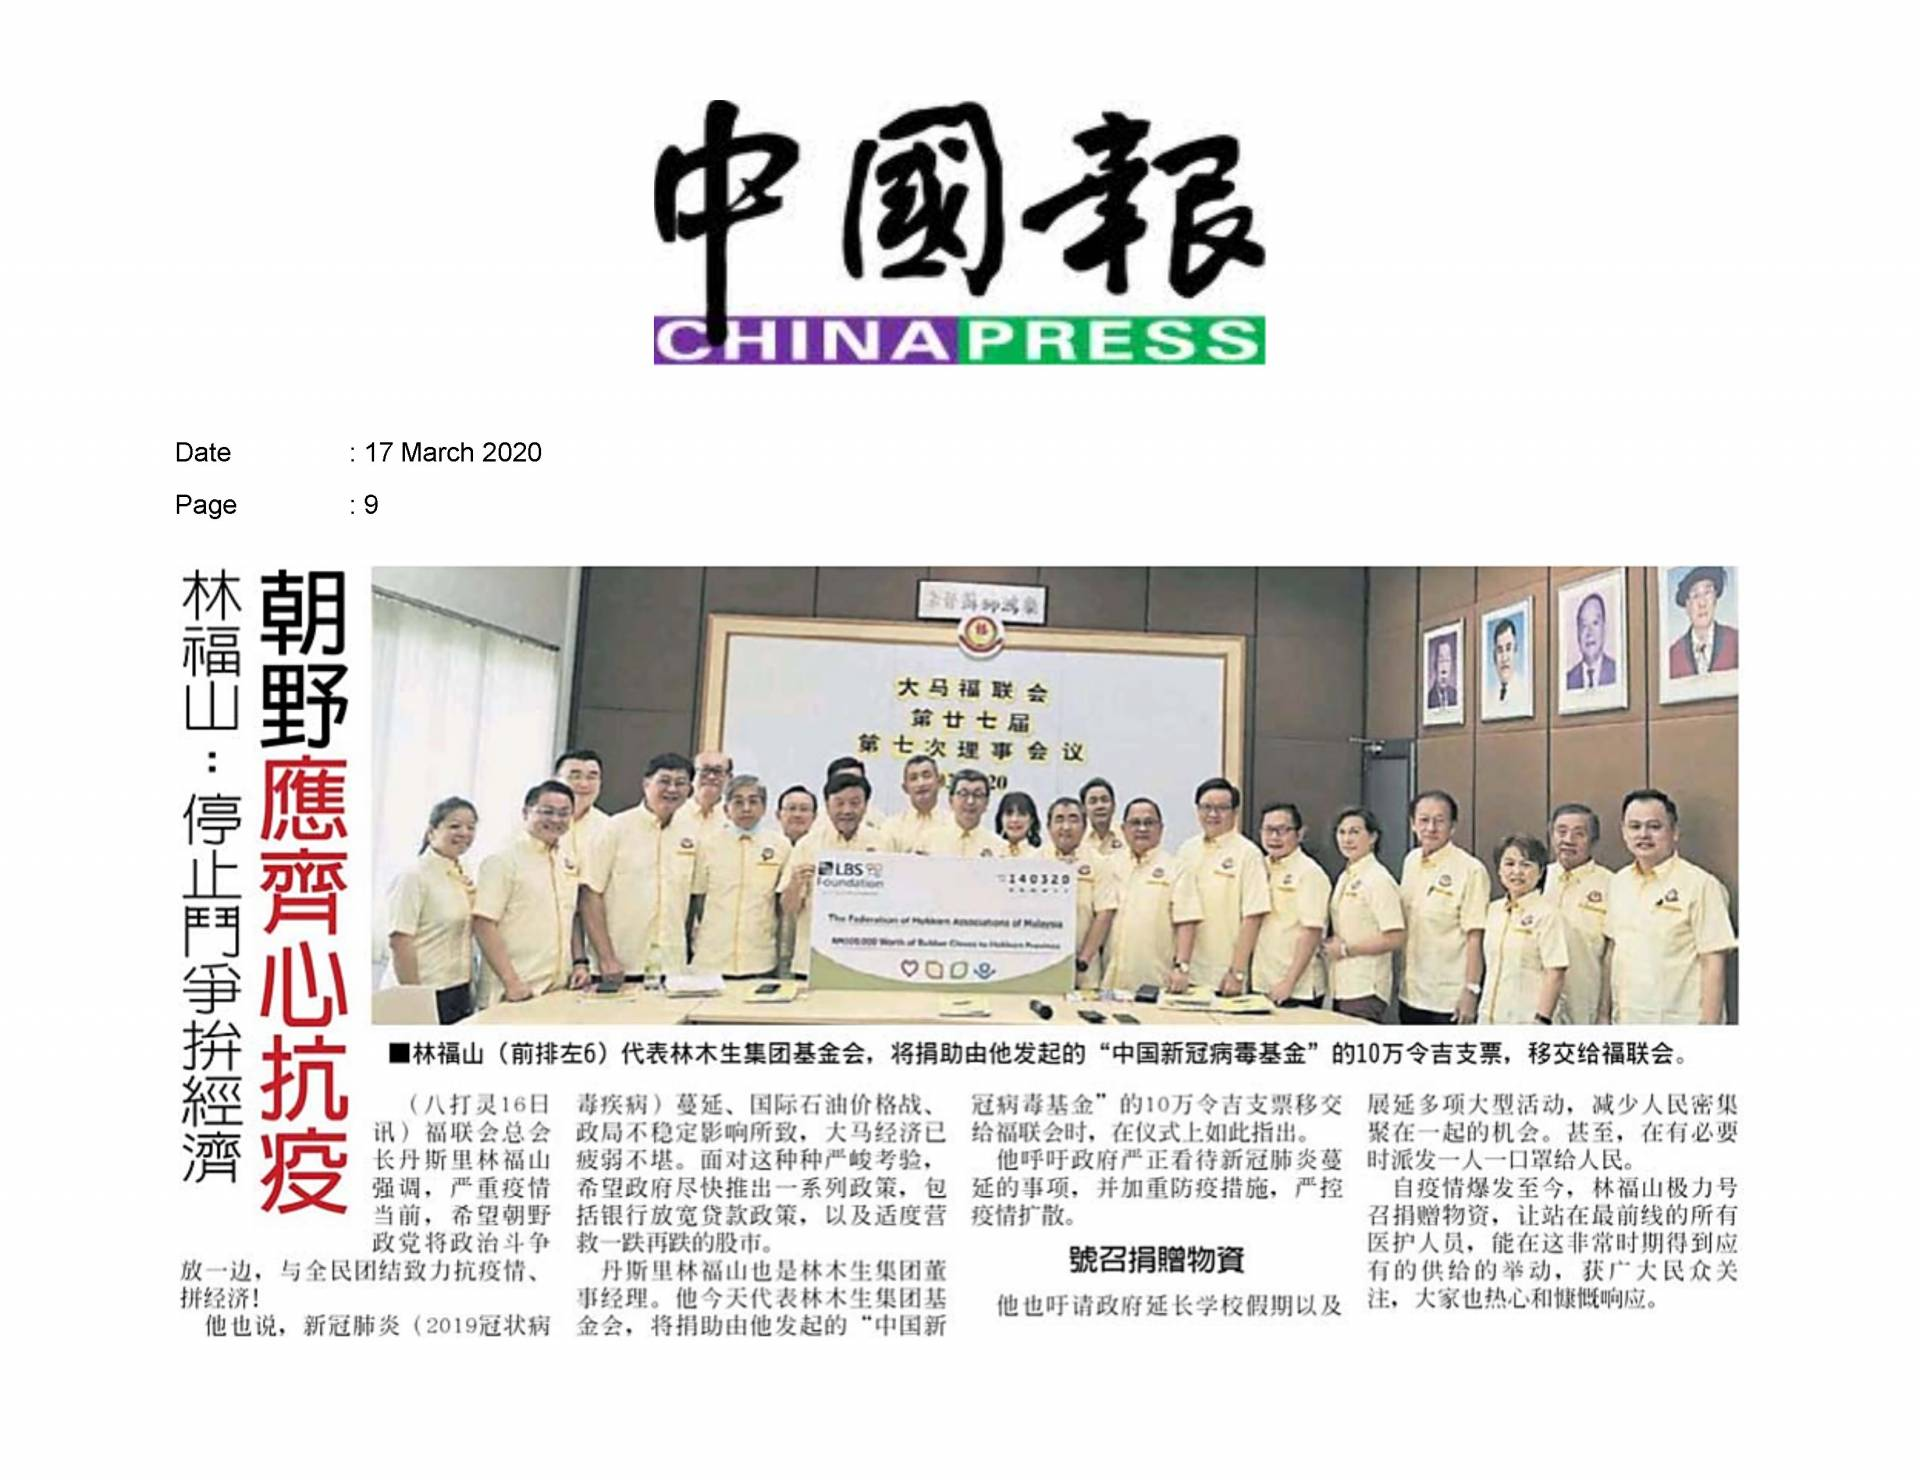 2020.03.17 China Press - Lim Hock San said politicians must unite in fight against disease